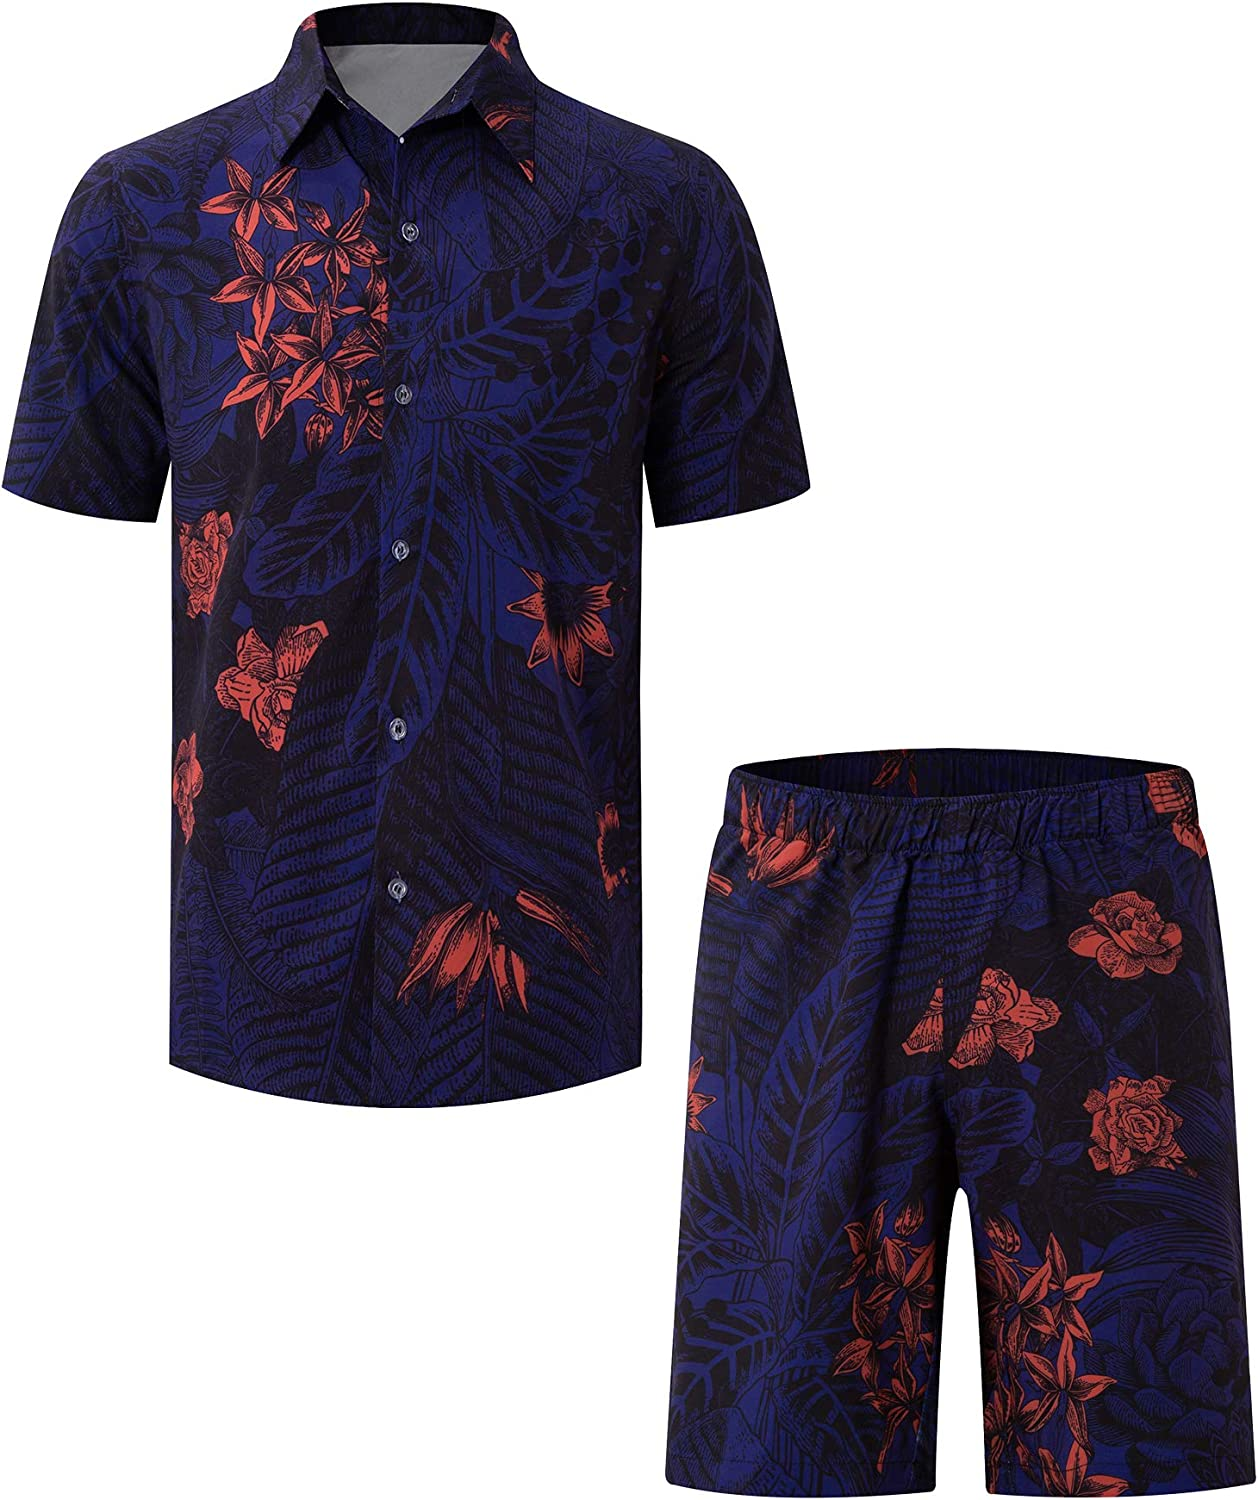 huan Full Sublimation 2-Piece Sportswear Hawaiian Shirt and Shorts Set Breathless Suit for Men's Suit